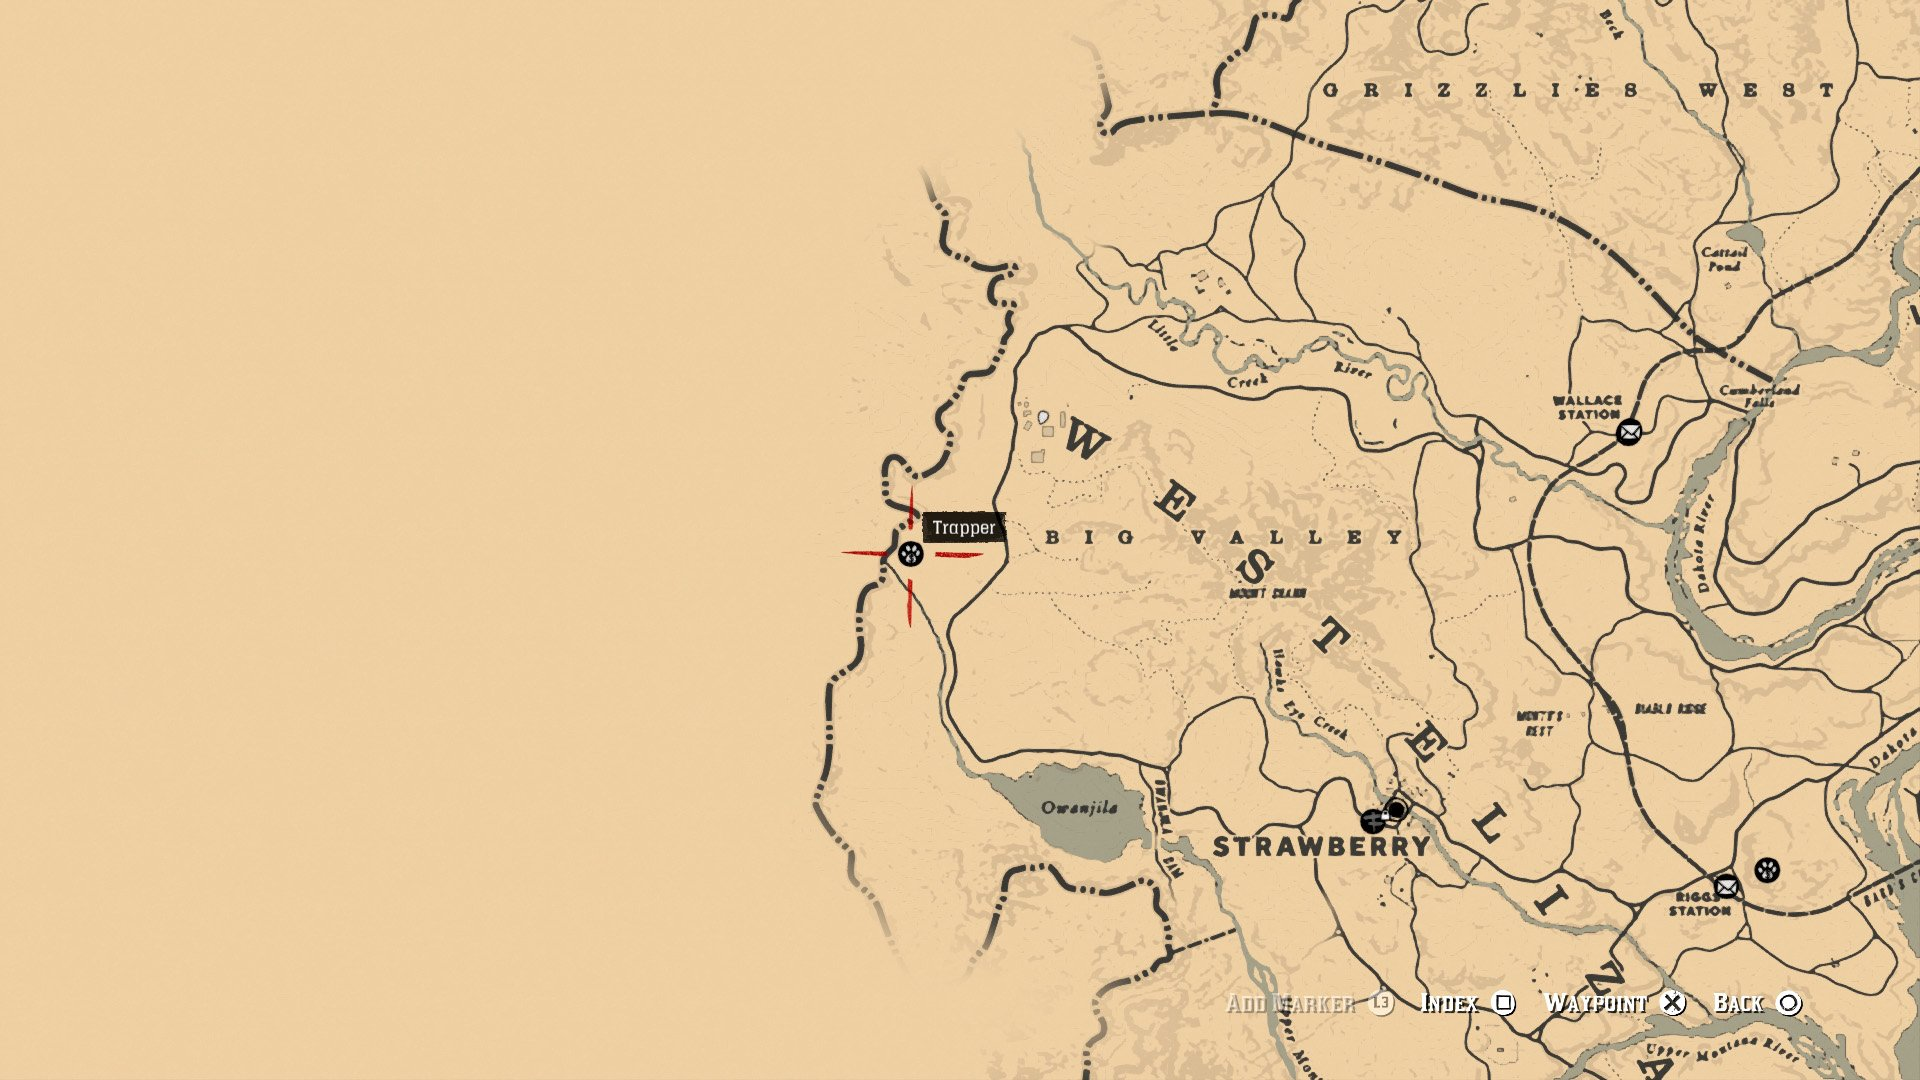 Southwest of Pronghorn Ranch, along the western border of West Elizabeth, is a Trapper.